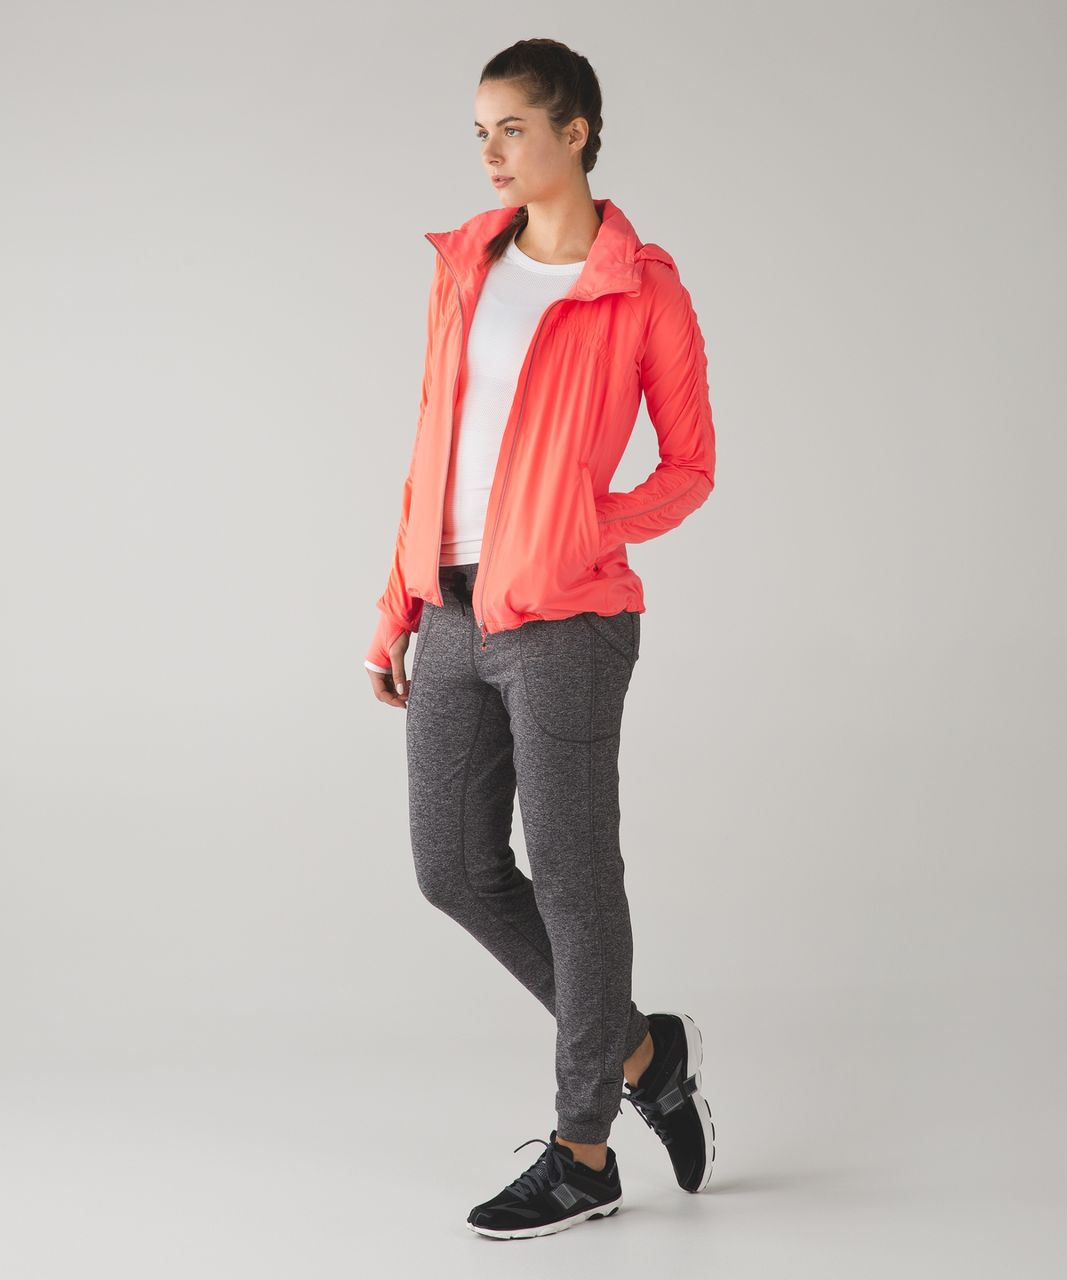 Lululemon Gather Me Slightly Jacket - Very Light Flare